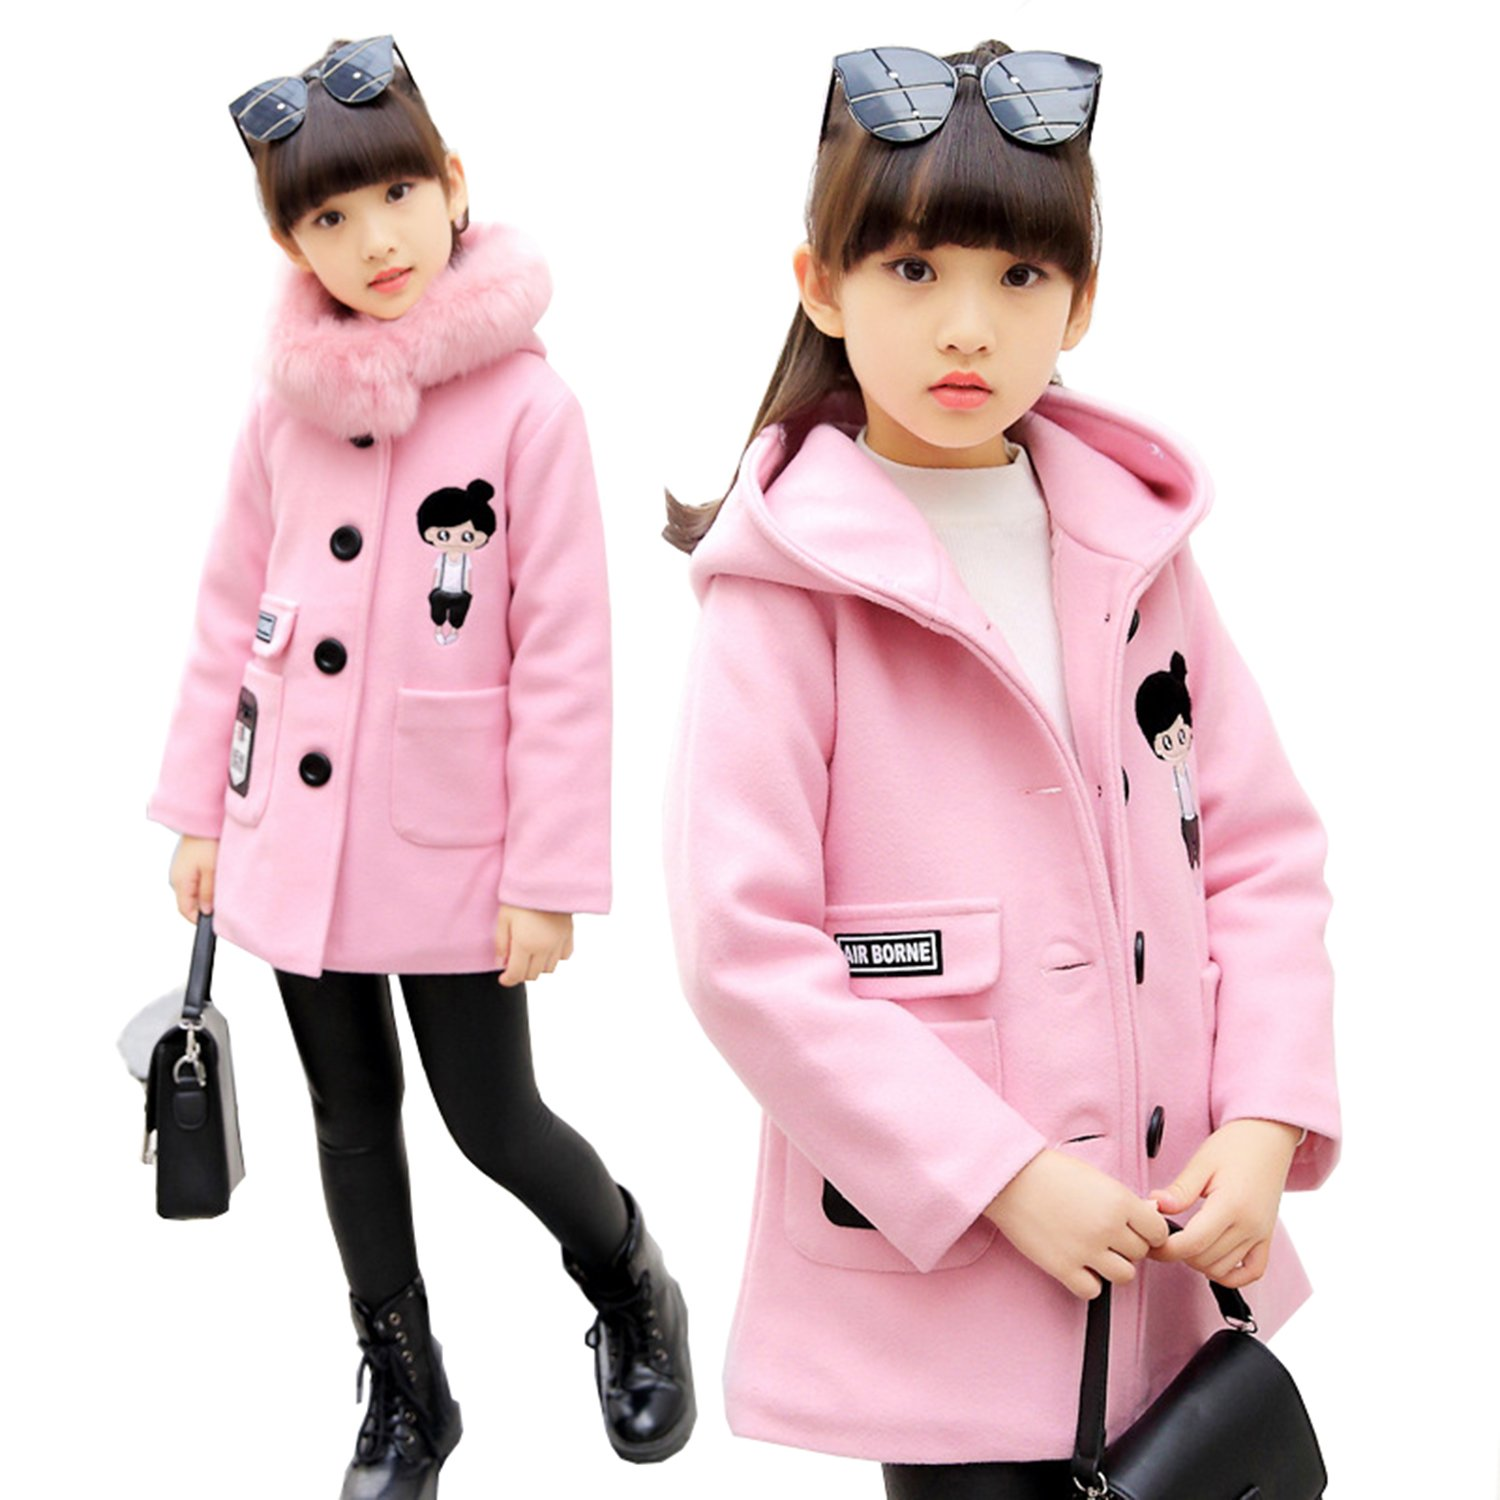 Euno Winter Girls' Fashion Thickening Detachable Fur Collar Coats and Hooded Coats Pink P120